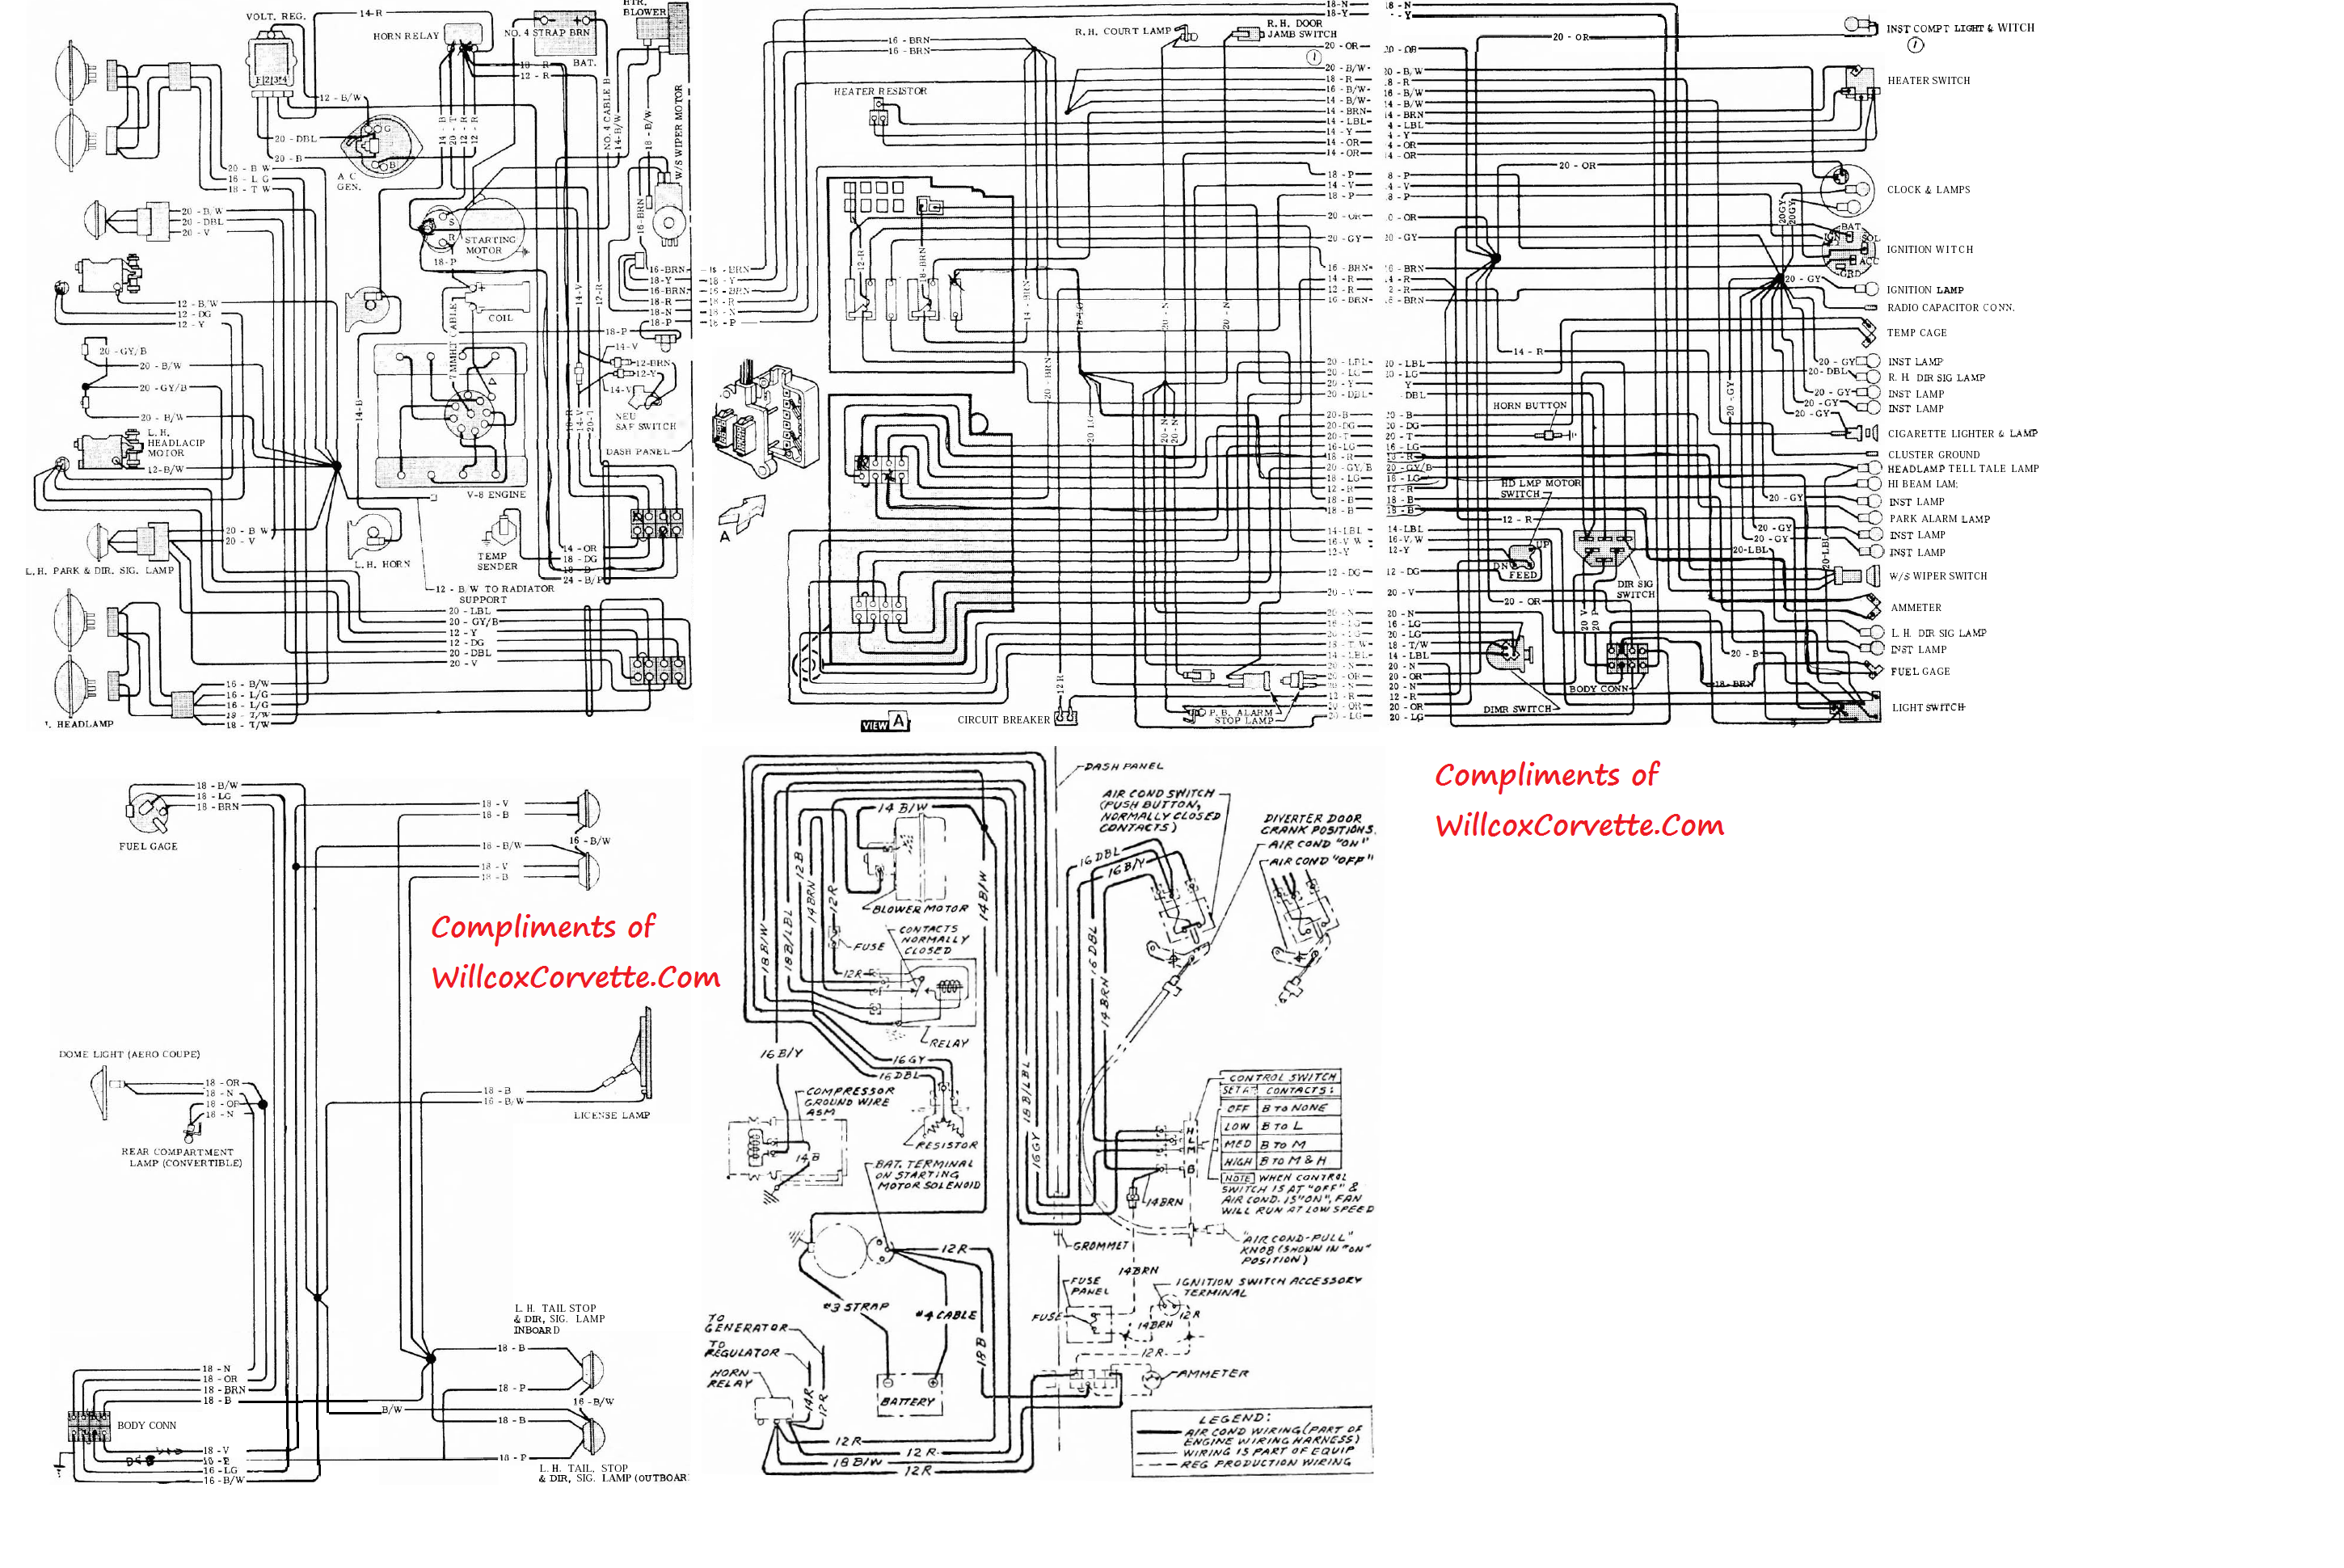 1963 Corvette Tracer Wiring Diagram Tracer Schematic 1963 corvette tracer wiring diagram tracer schematic willcox corvette wiring diagram at gsmportal.co